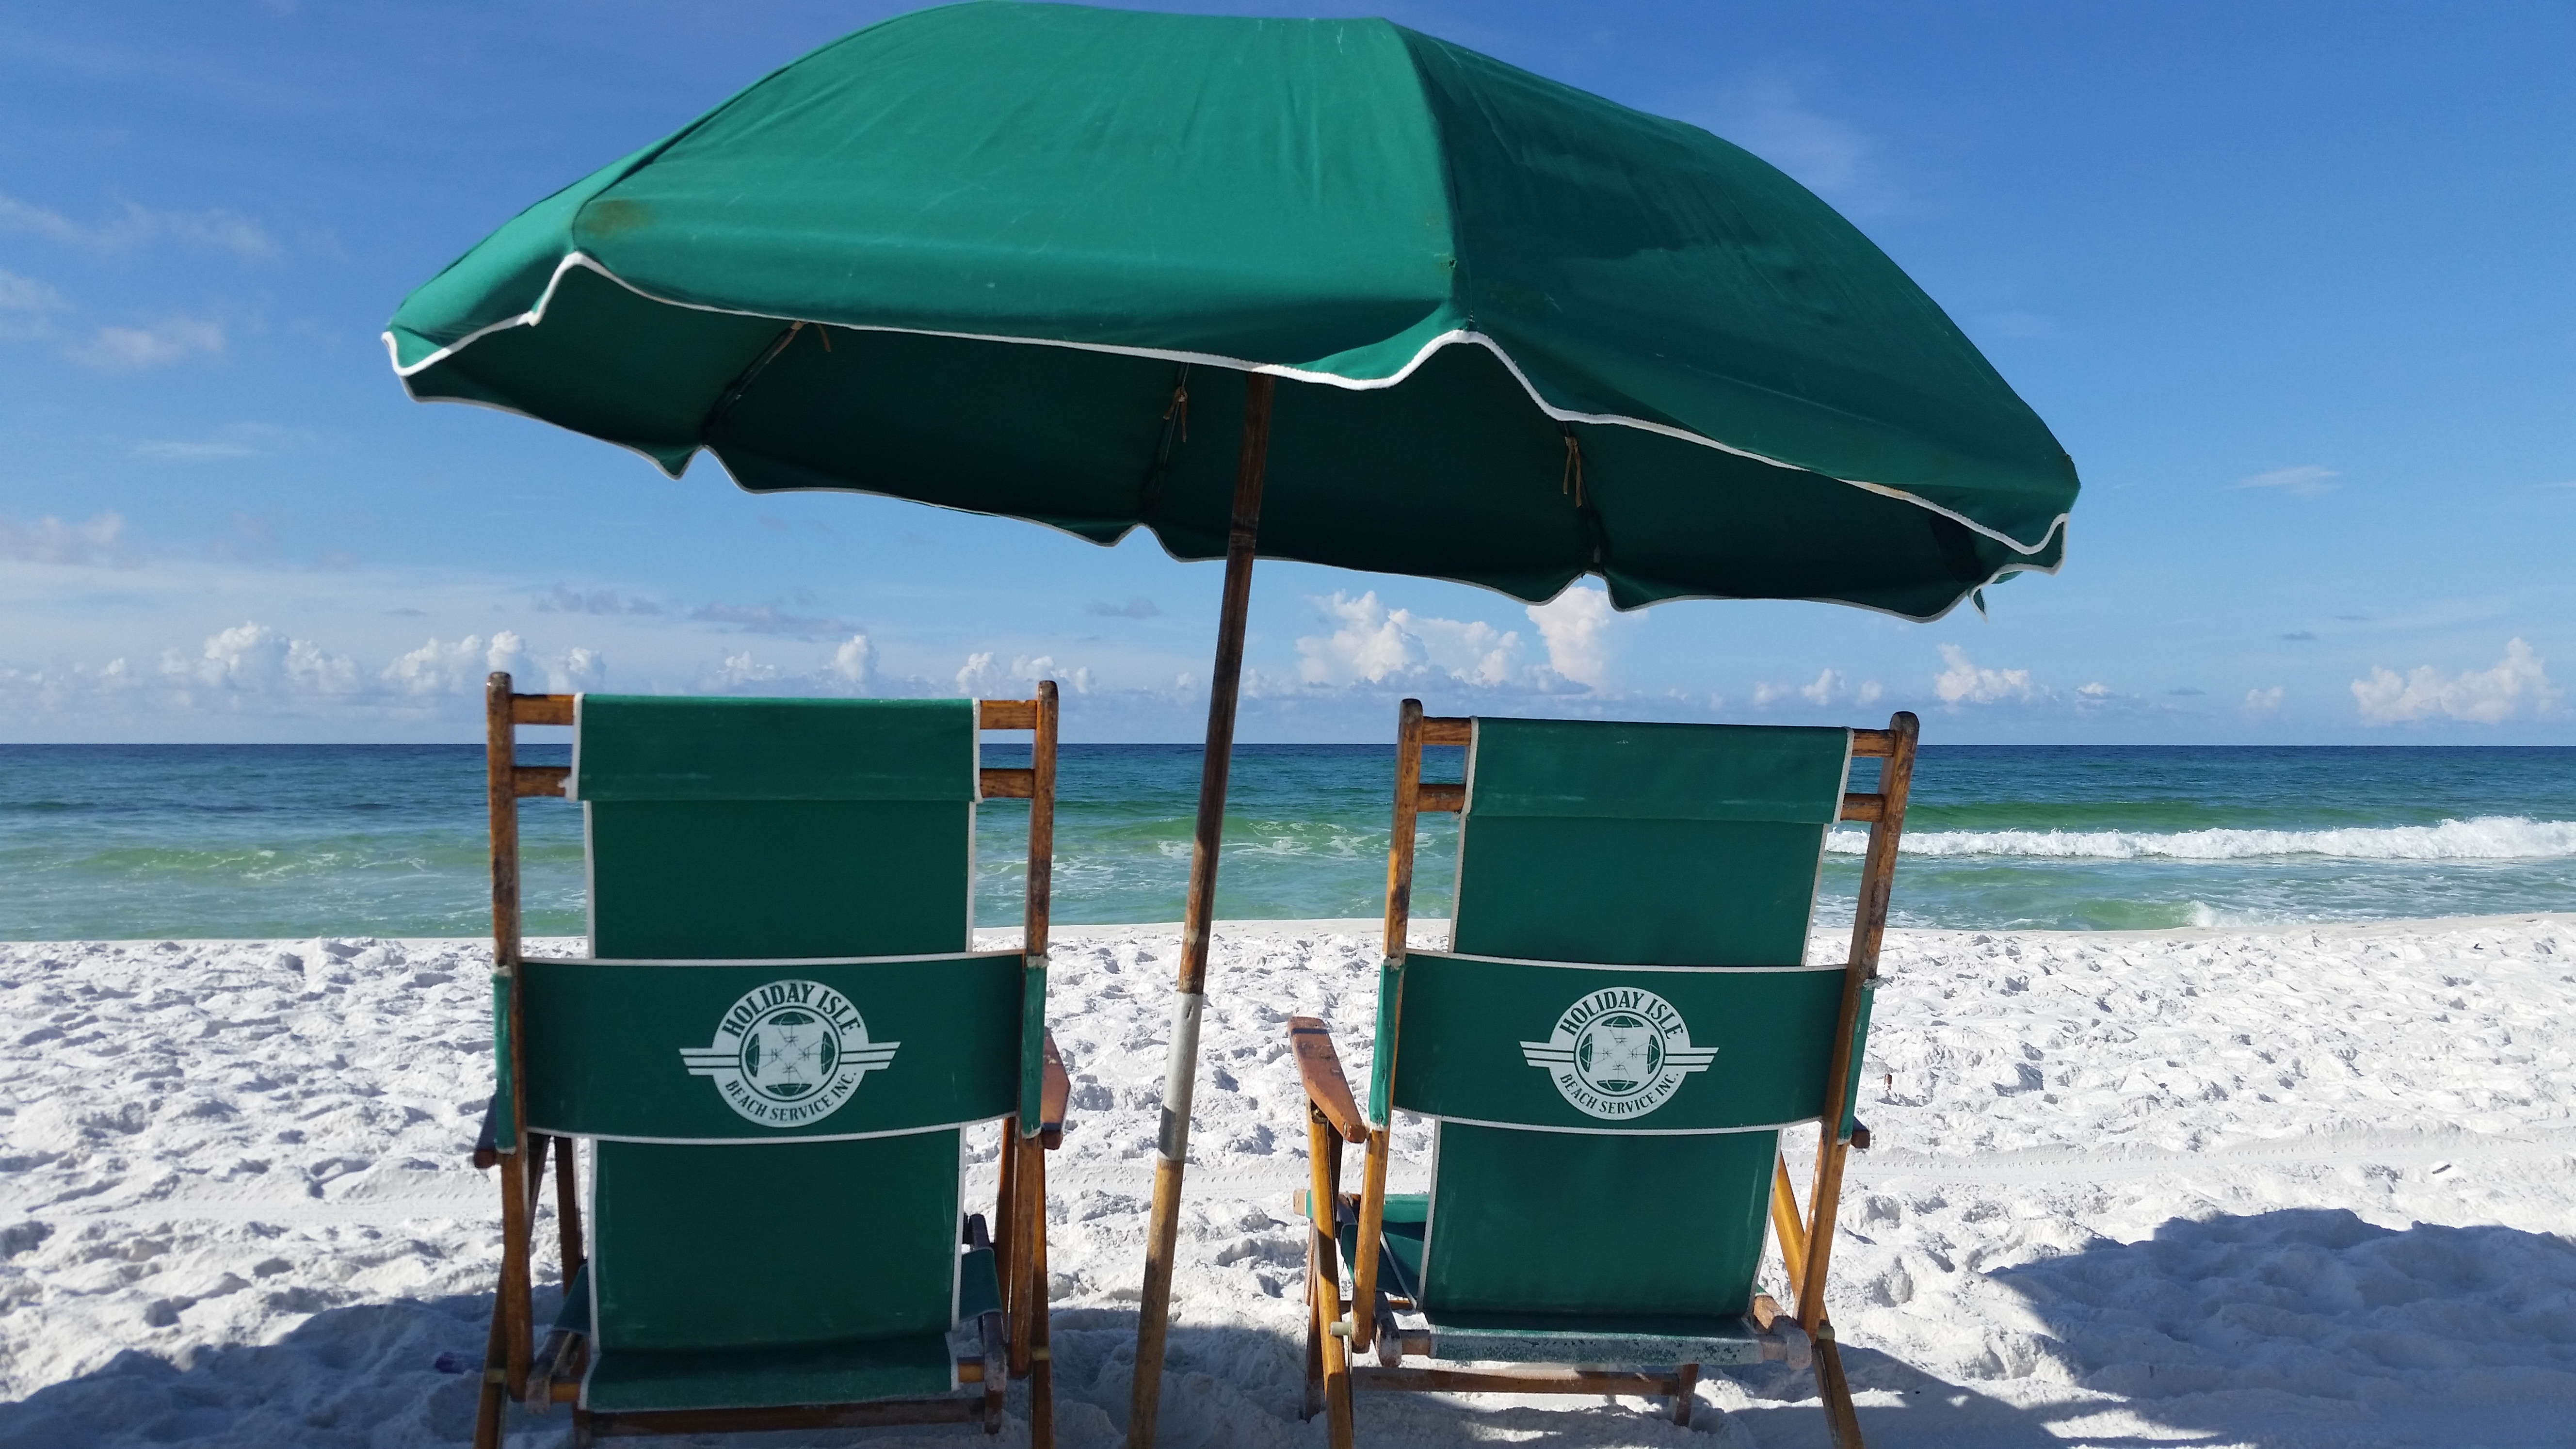 Florida's Emerald Coast Ranked Among 10 Best in the US